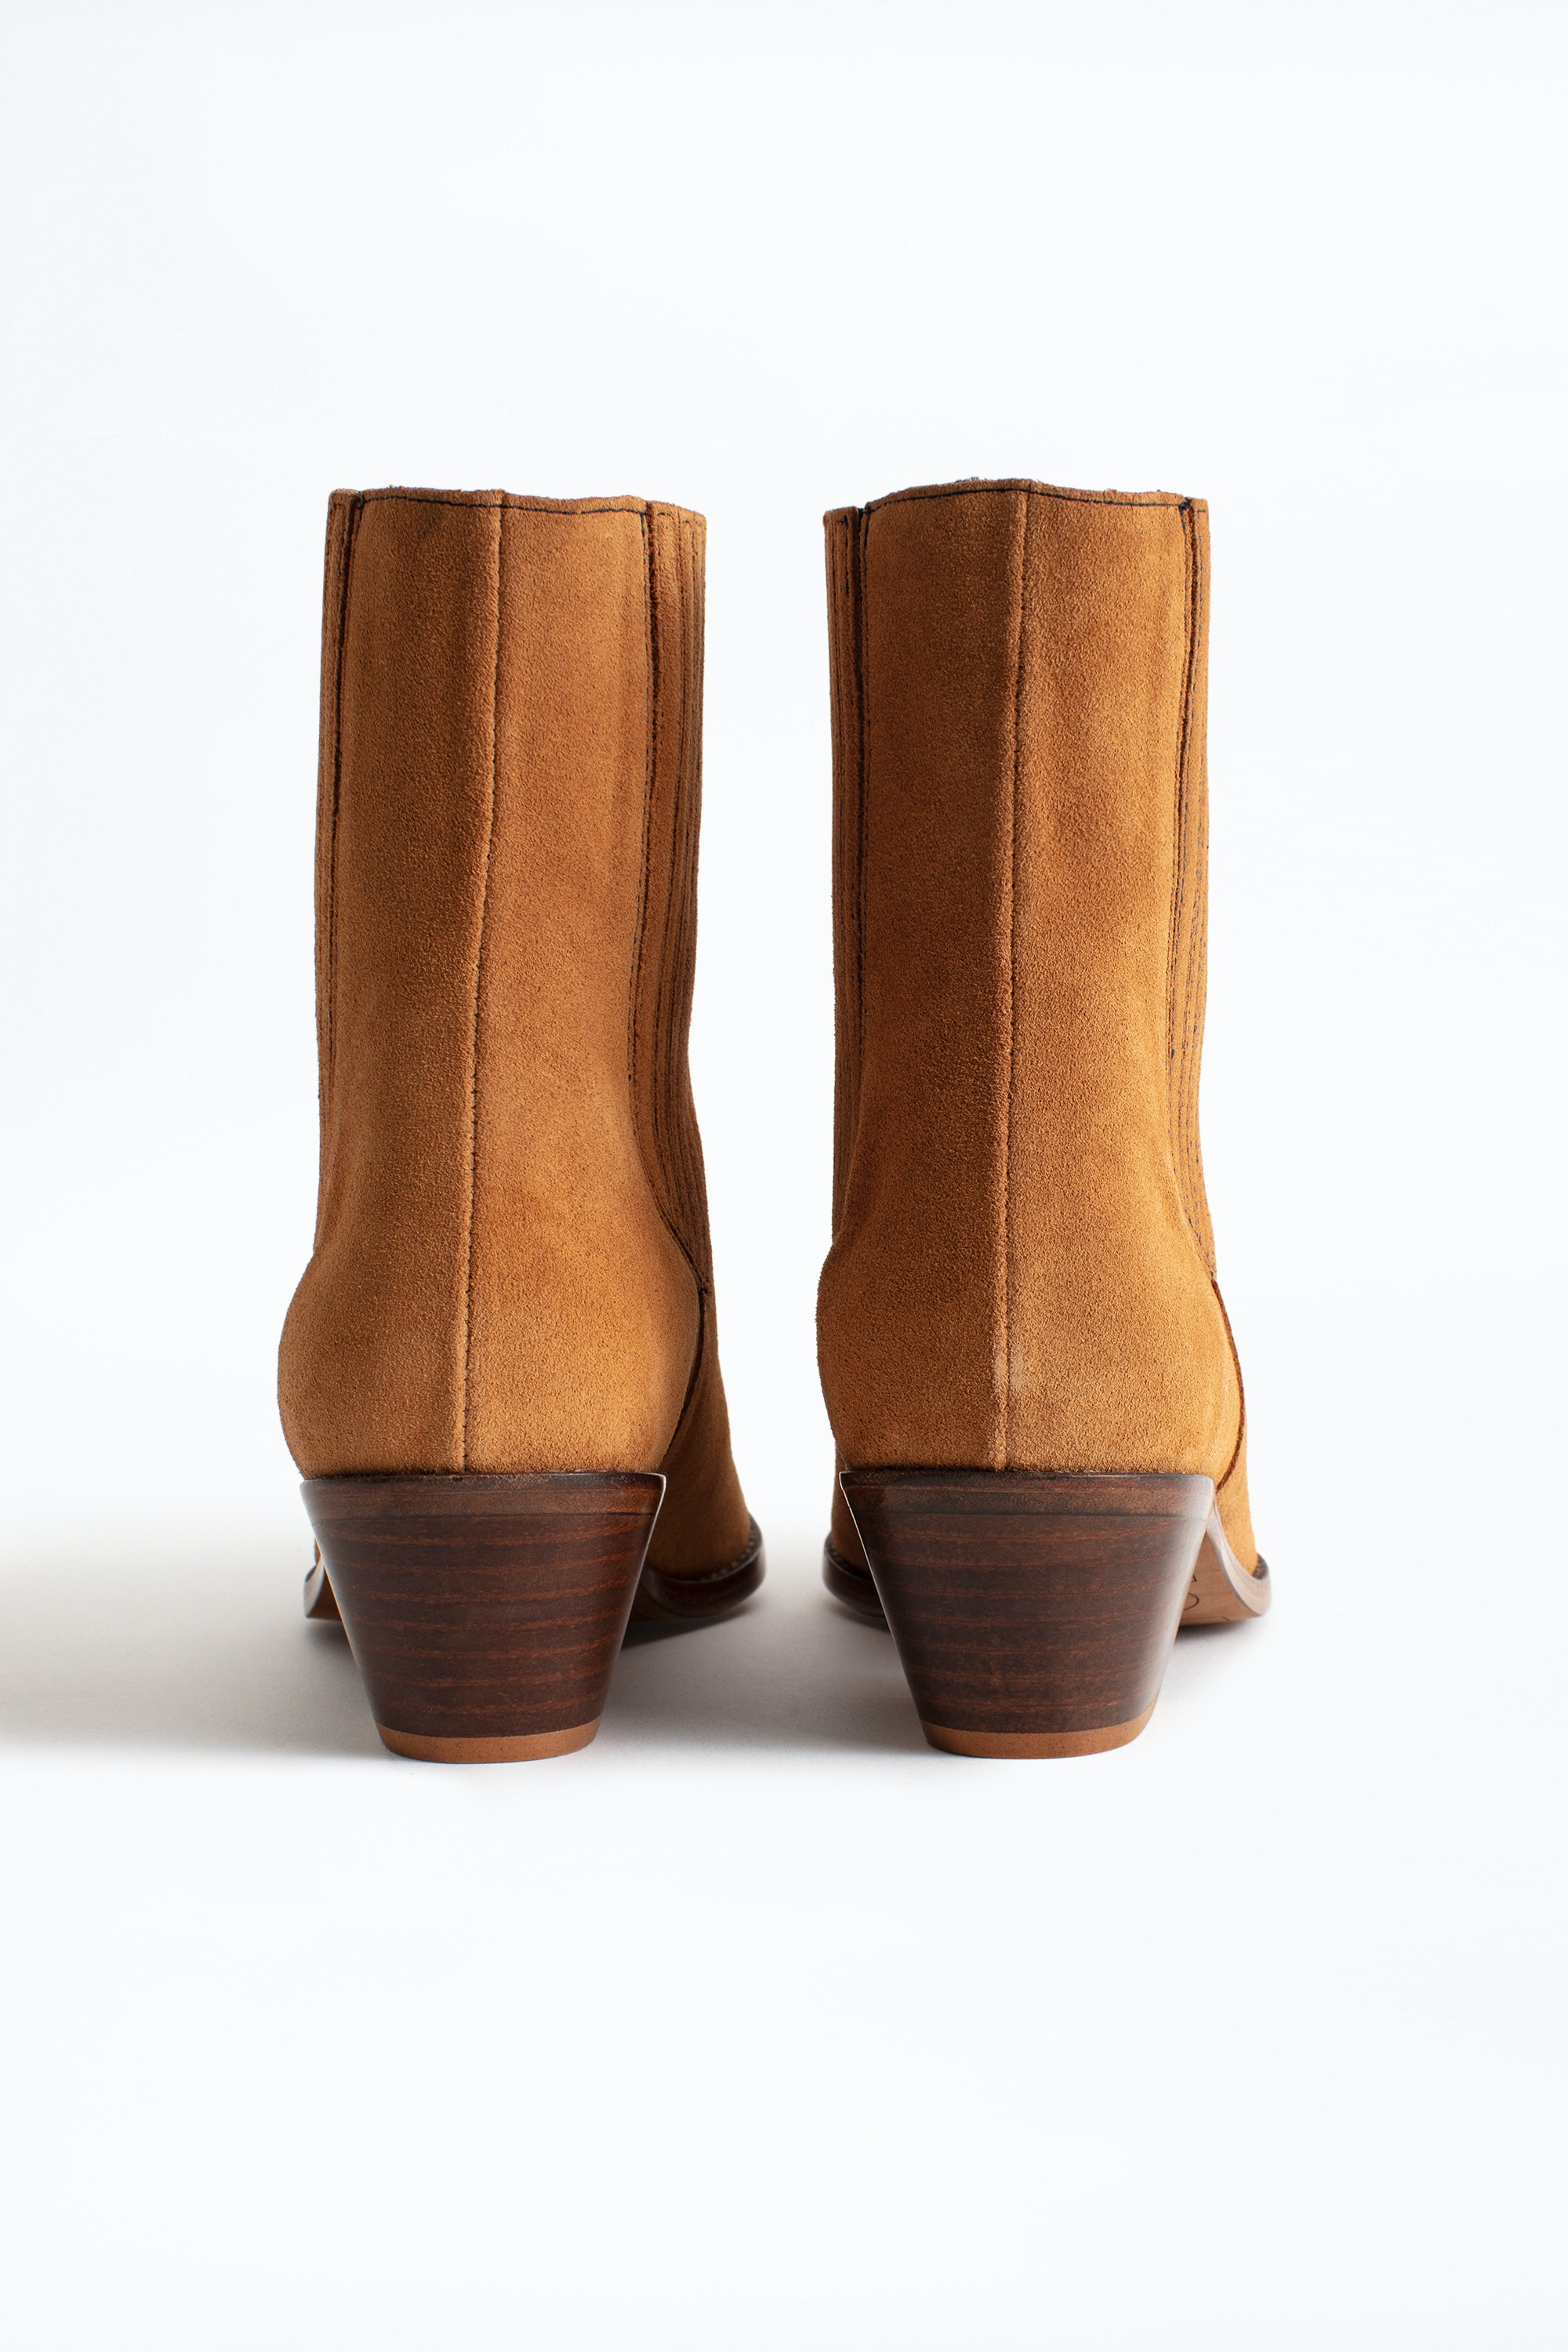 Tyler Suede Ankle Boots - boots women